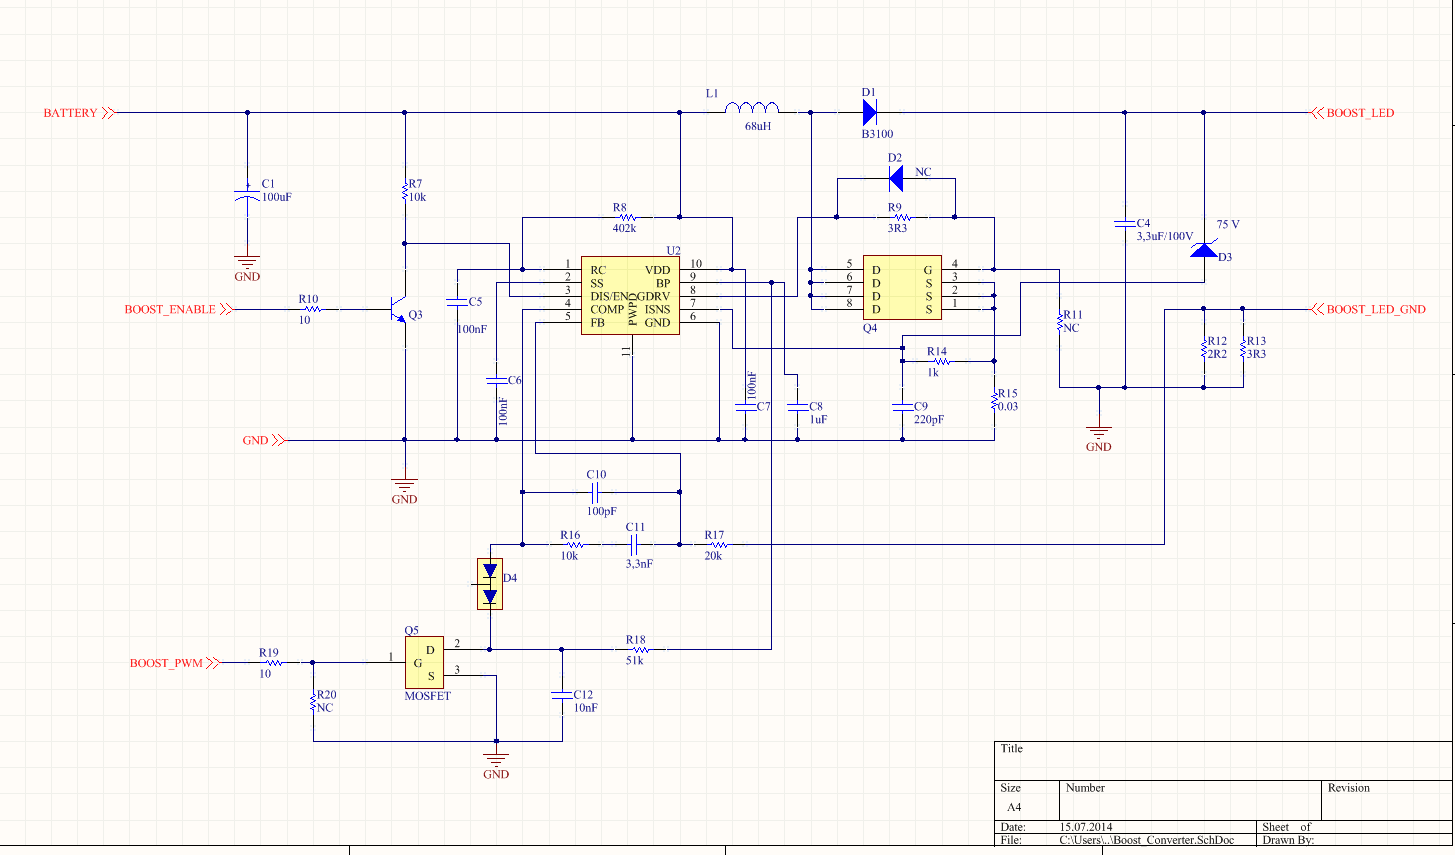 Tps40211 Leds Are Flashing When Pwm Dimming Power Management Forum Dimmable Led Circuit I Think It Causes From Compensation Network Could You Have Any Suggestion About This Issue Thanks In Advance